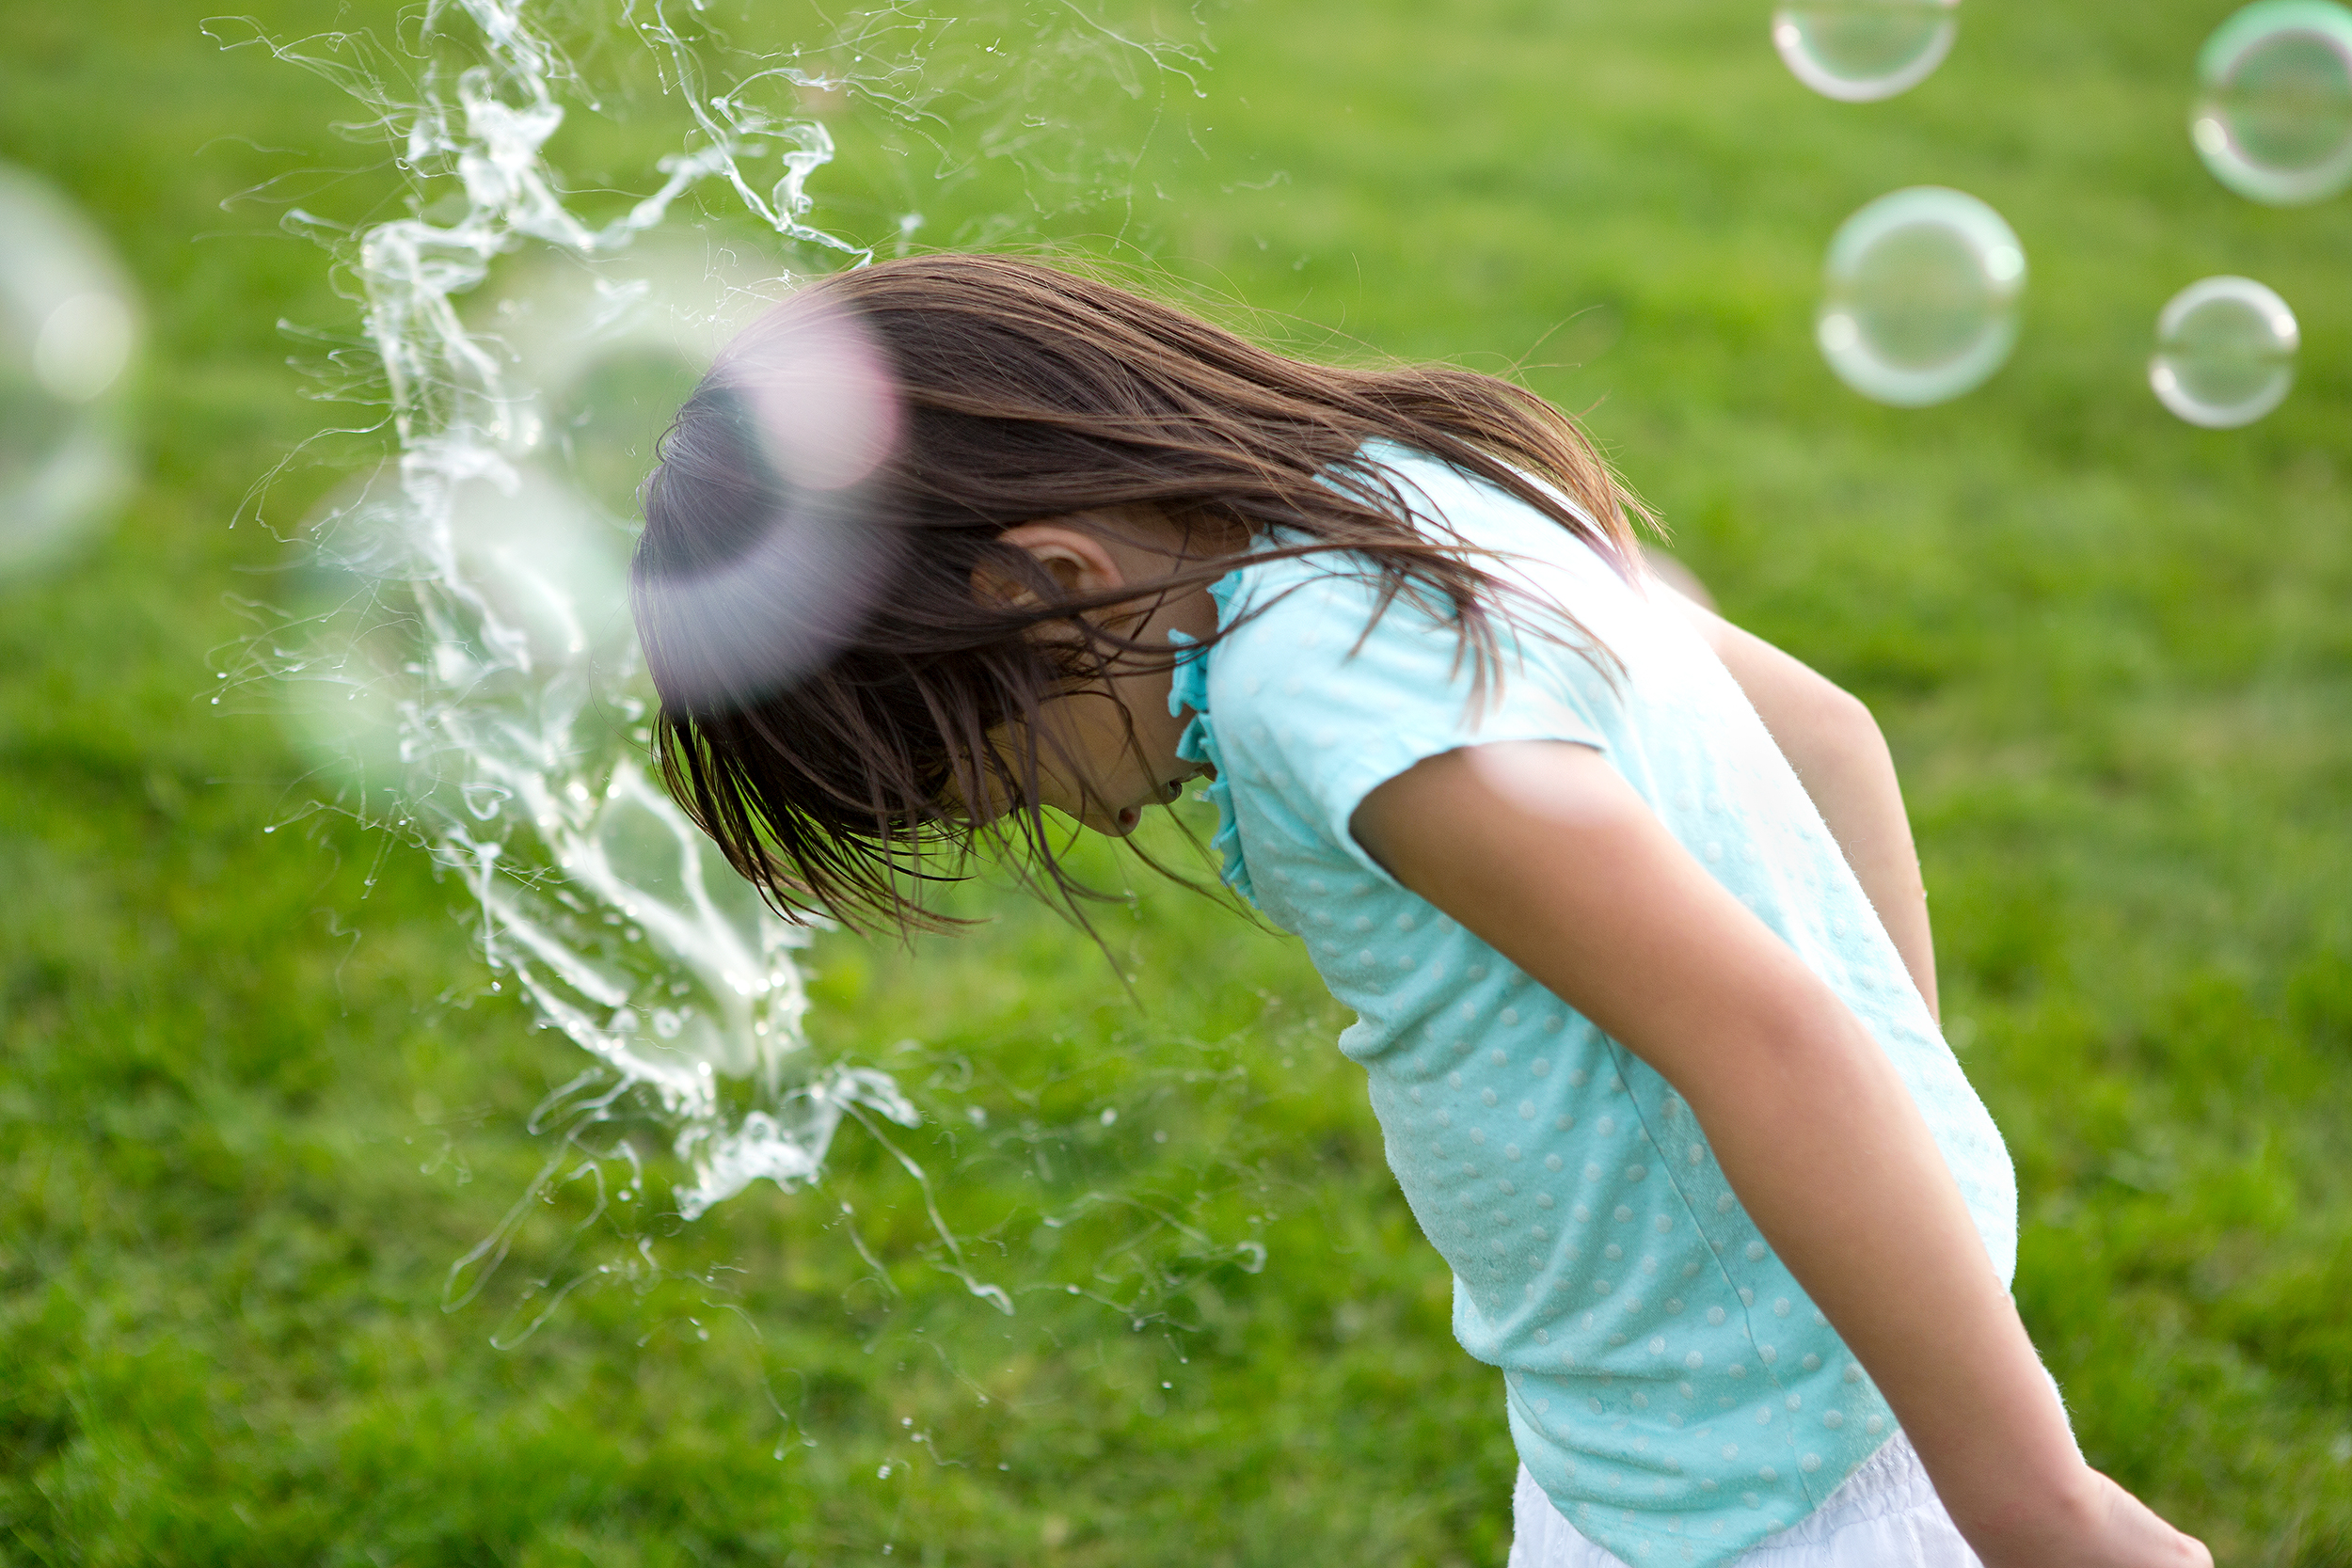 PHOTOGRAPHER ART DIRECTOR | KIDS | CHILDHOOD | BUBBLES | REAL PLAY | PLAY | Fun | 2